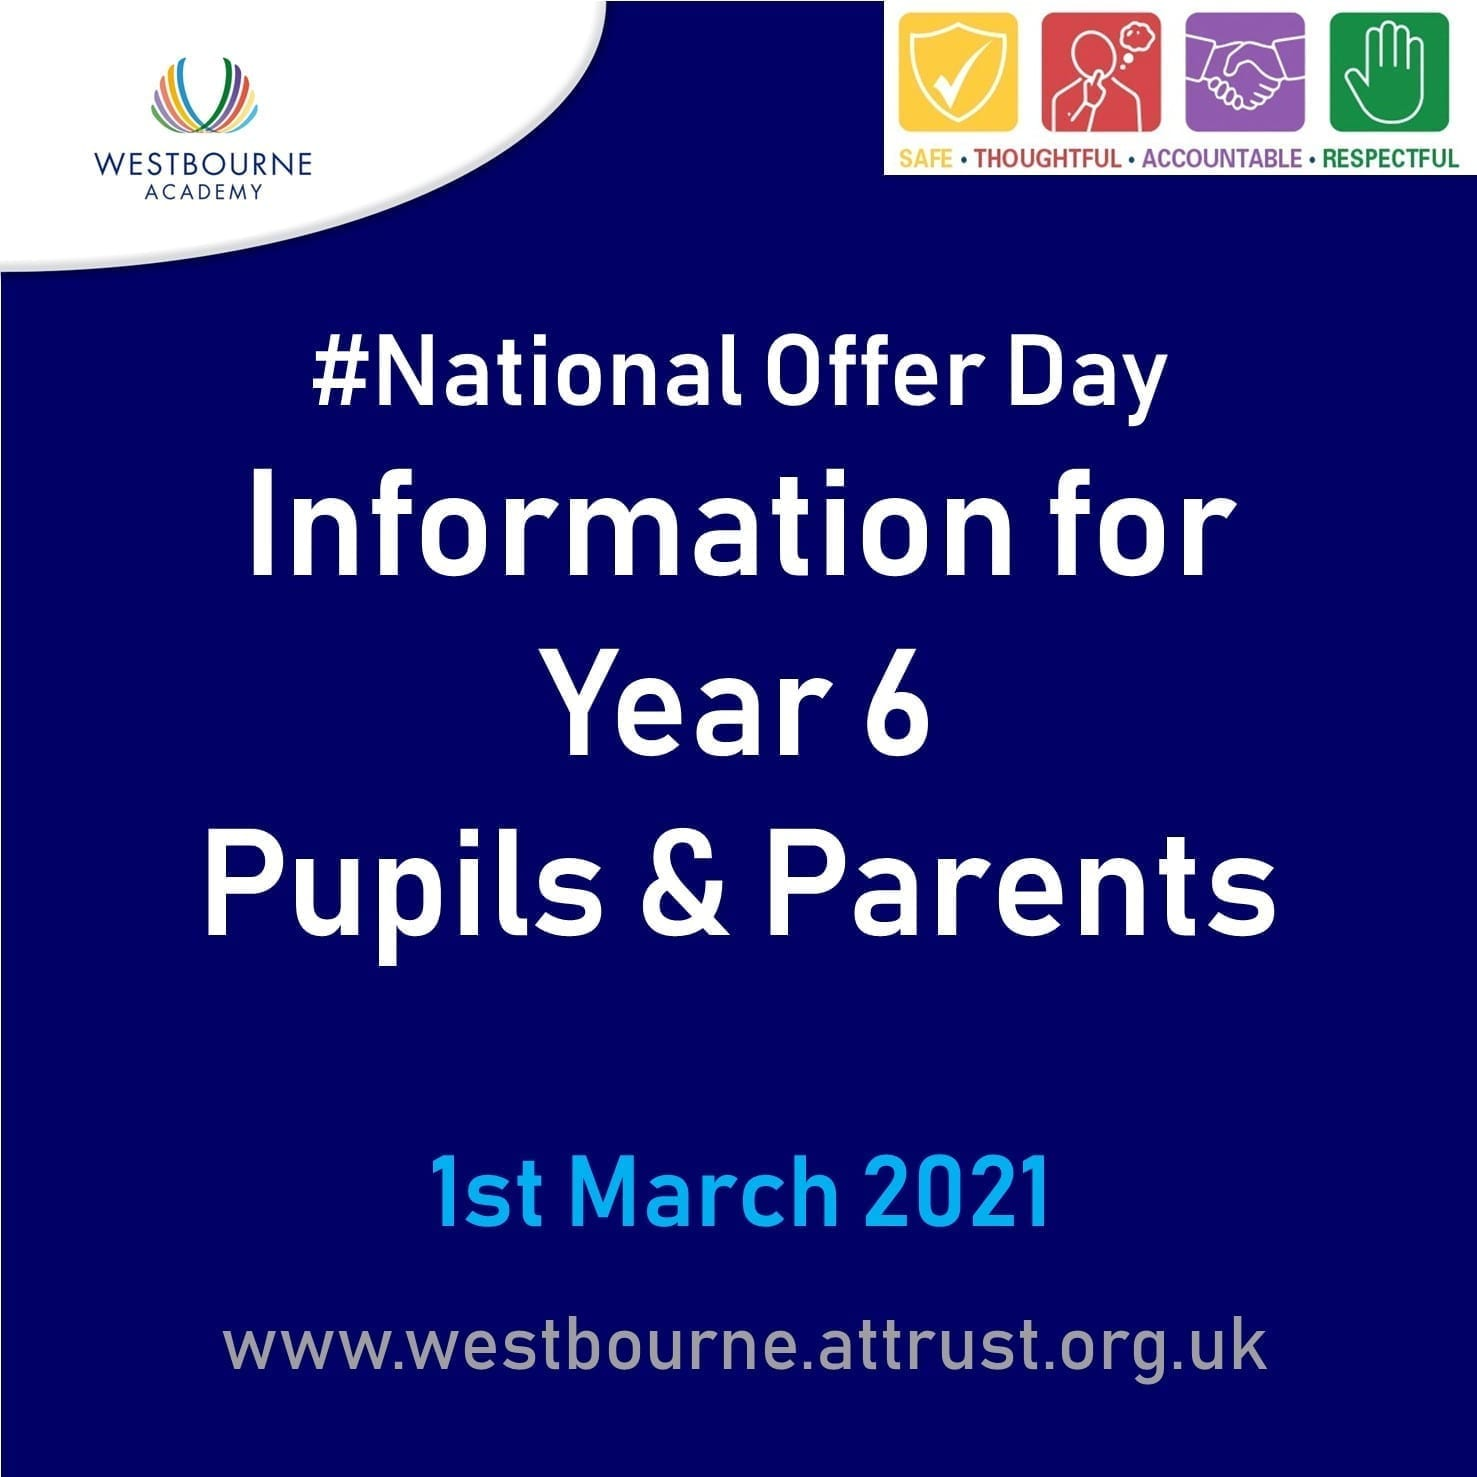 #National Offer Day Information for Year 6 Pupils & Parents